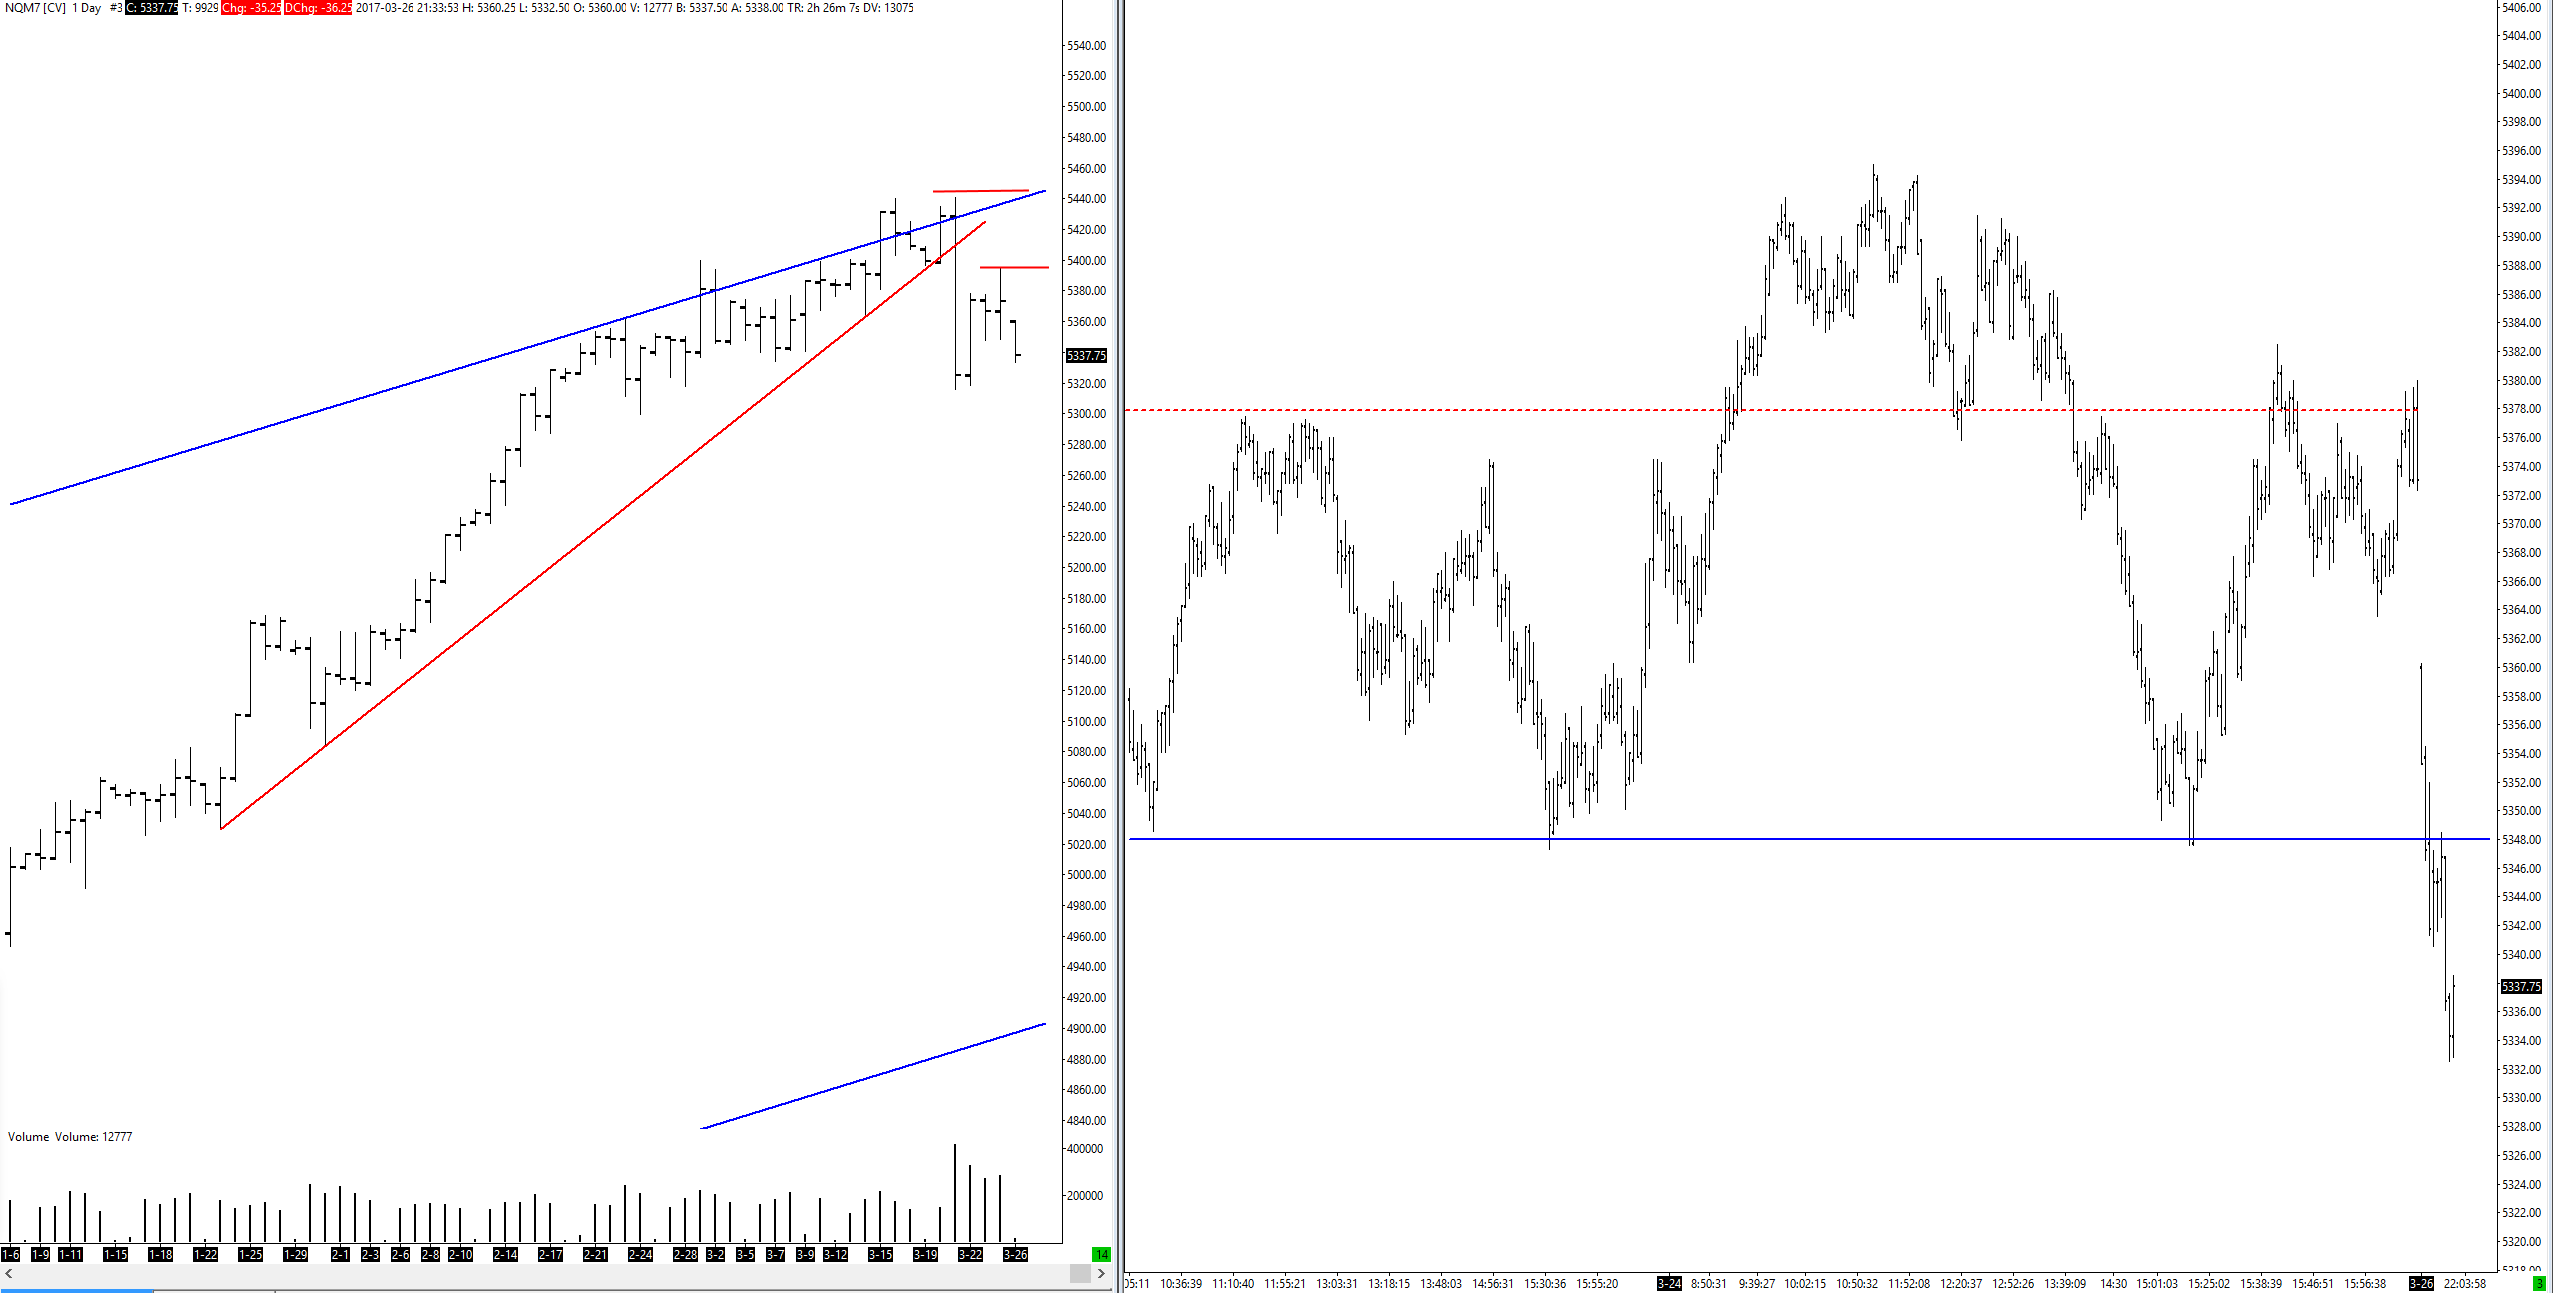 nq27032017dailynotes.png